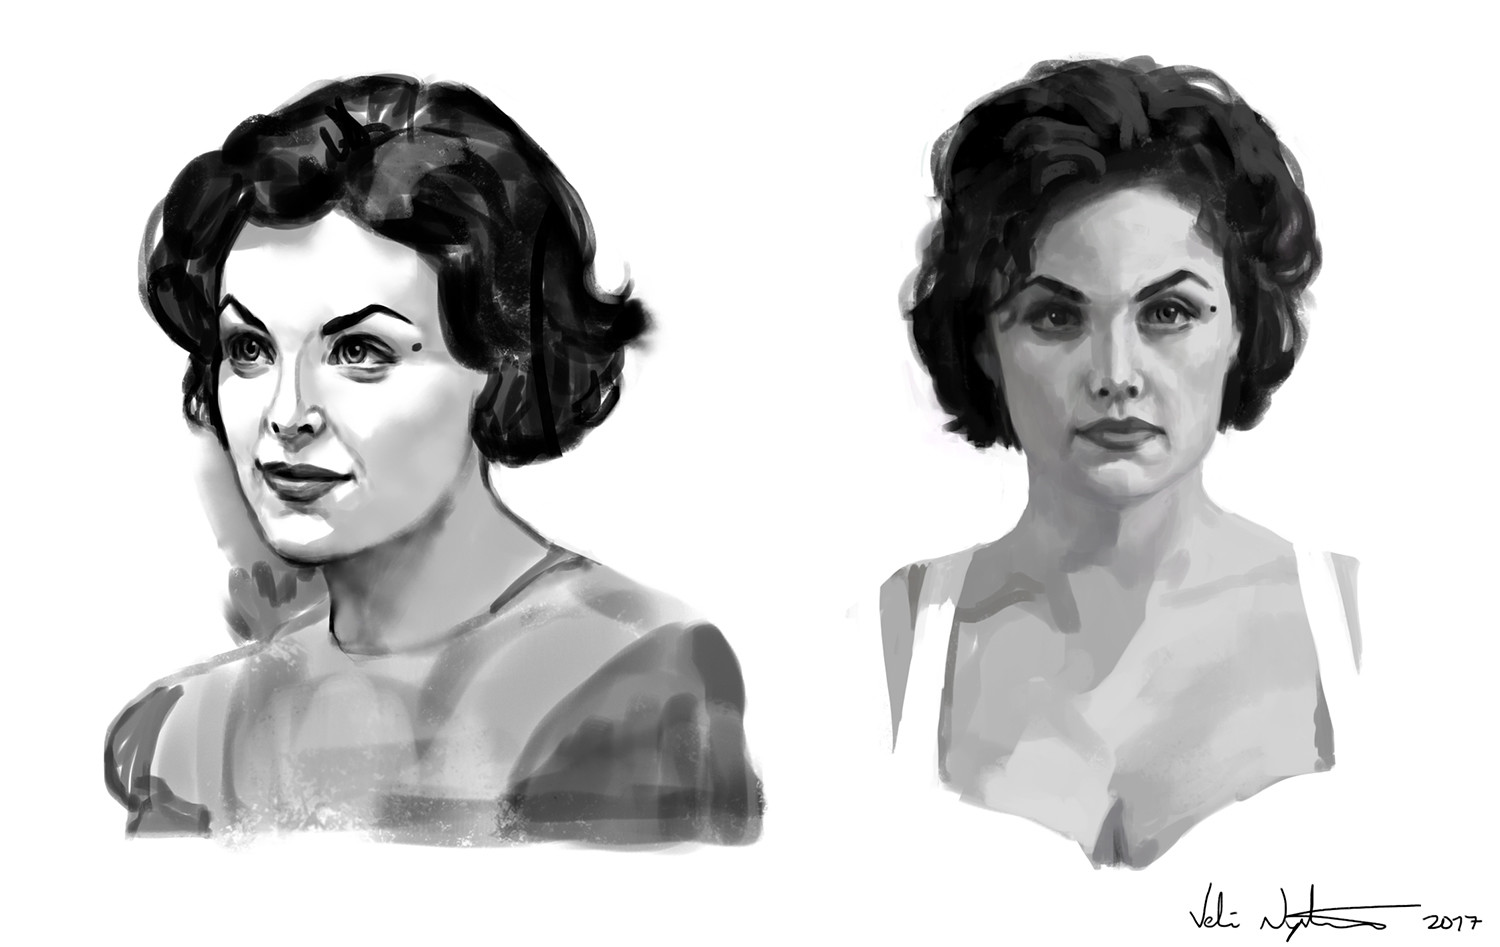 Studies from Twin Peaks (Sherilyn Fenn)